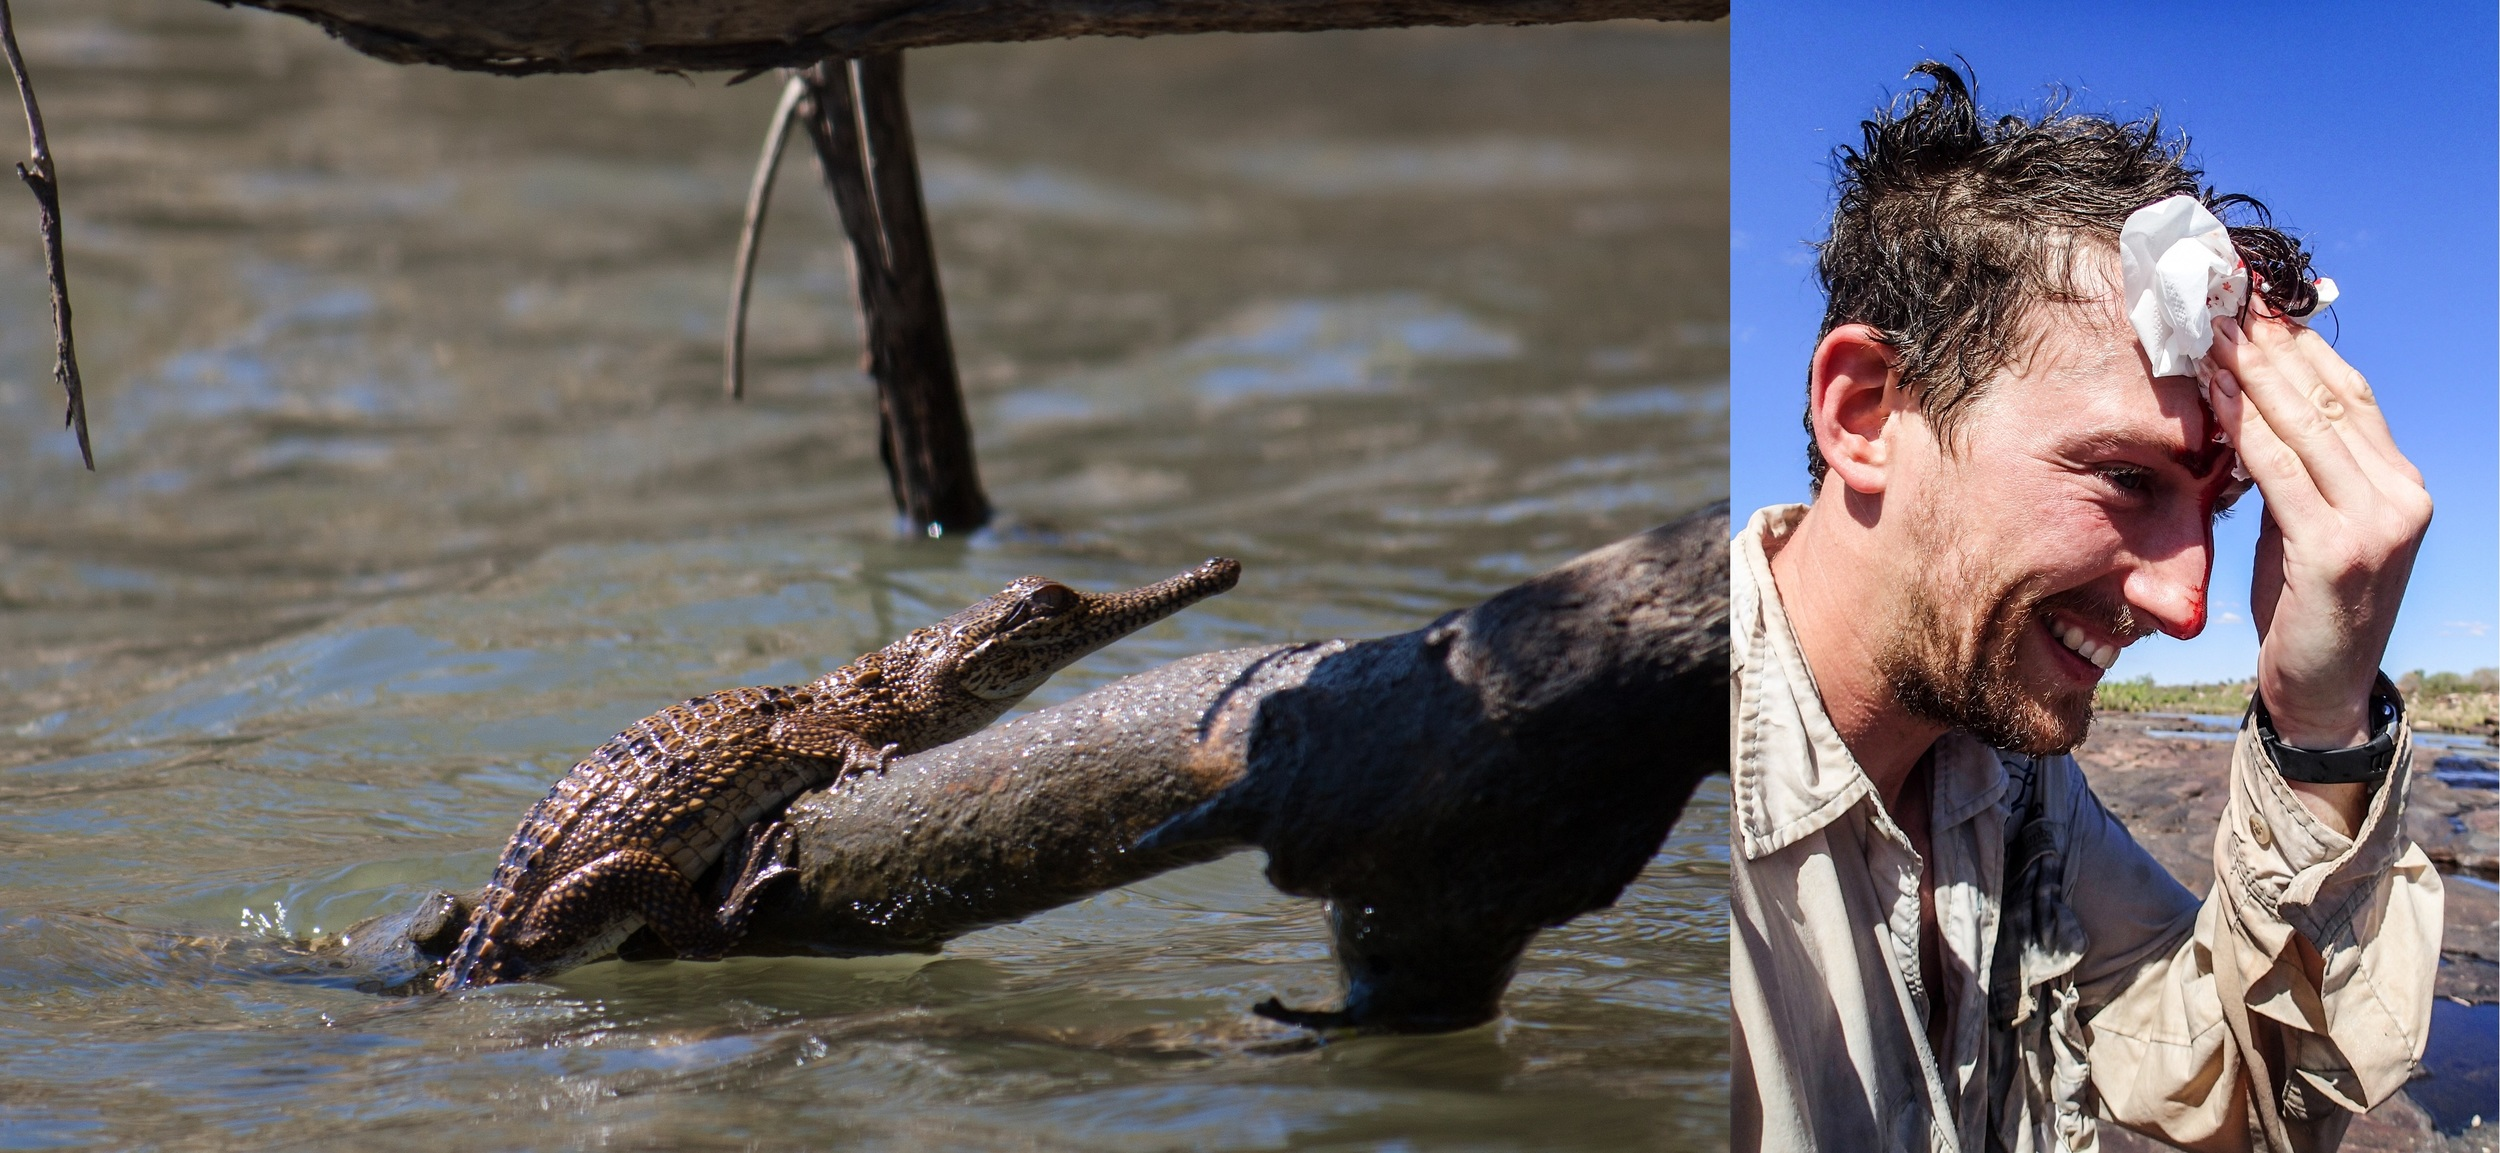 Freshwater crocodiles (left) are less dangerous than salties, but can still pack a punch, as James Shelley found out (right) . © Matt Le Feuvre.